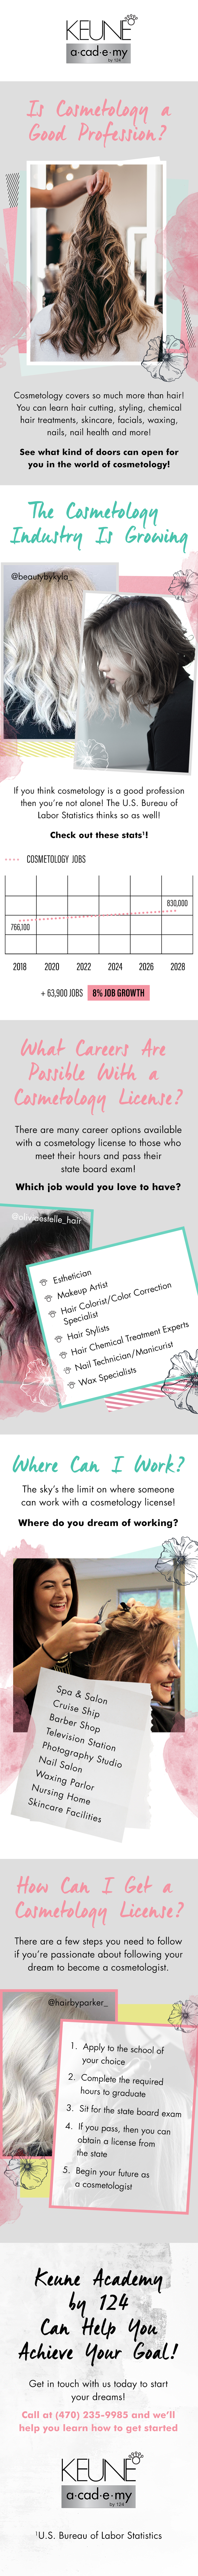 infographic of is cosmetology a good profession blog